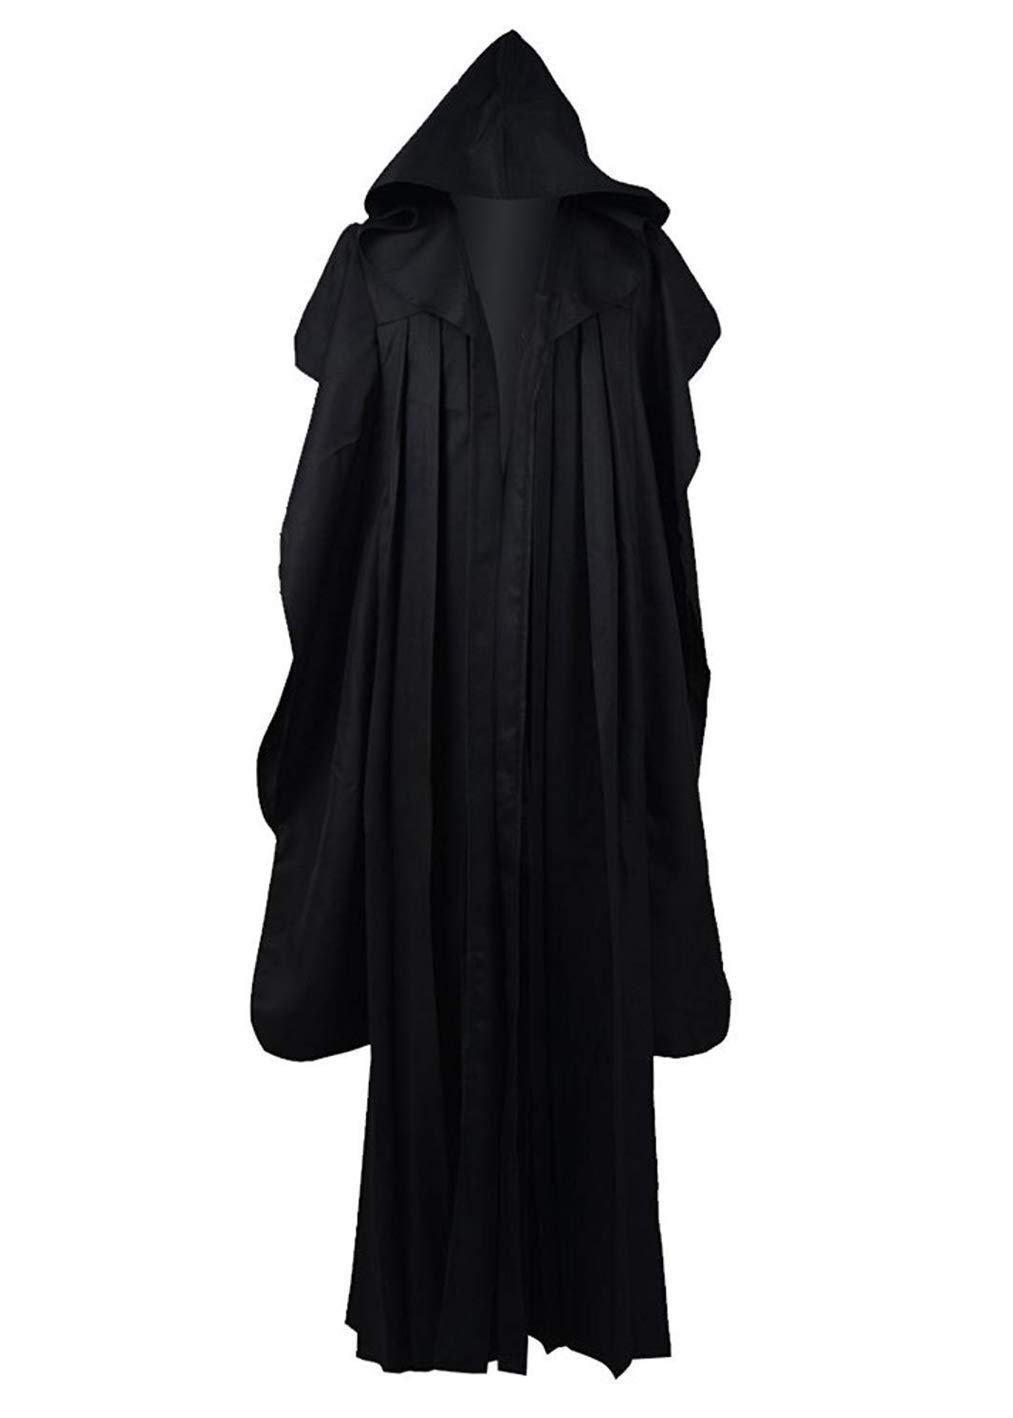 Mens Jedi Anakin Black Robes Cosplay Costumes for Halloween